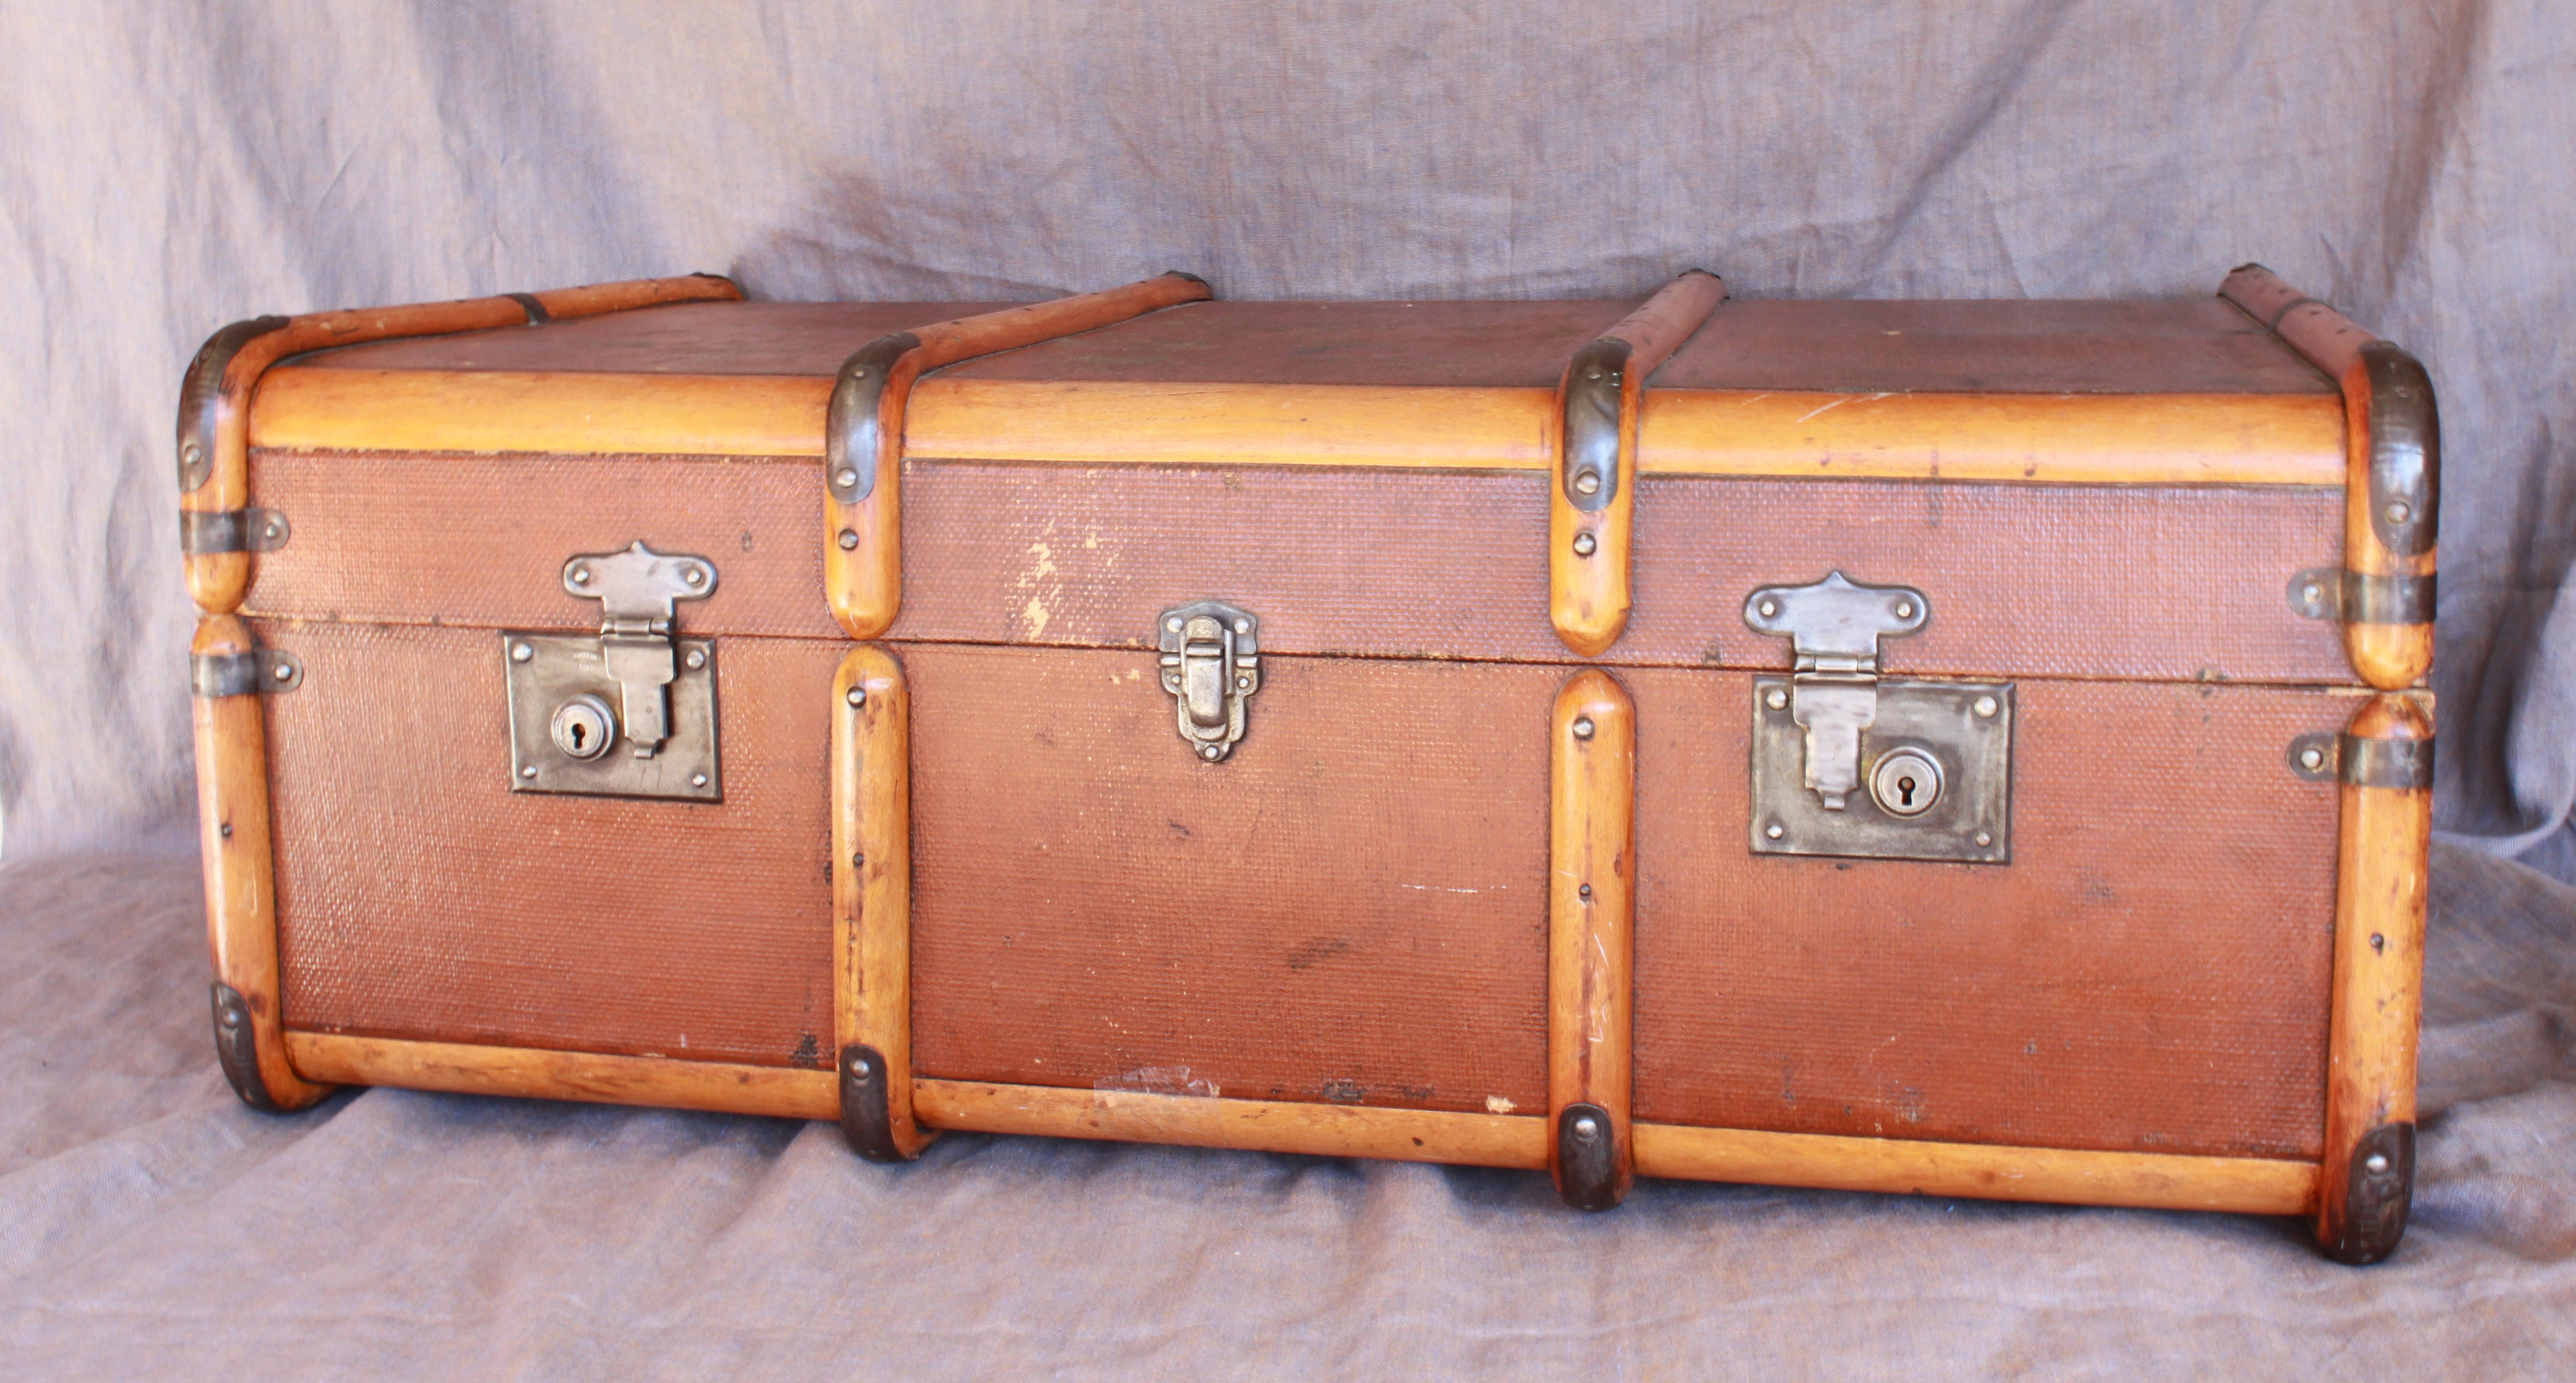 New/Old Steamer Trunk | THE CAVENDER DIARY